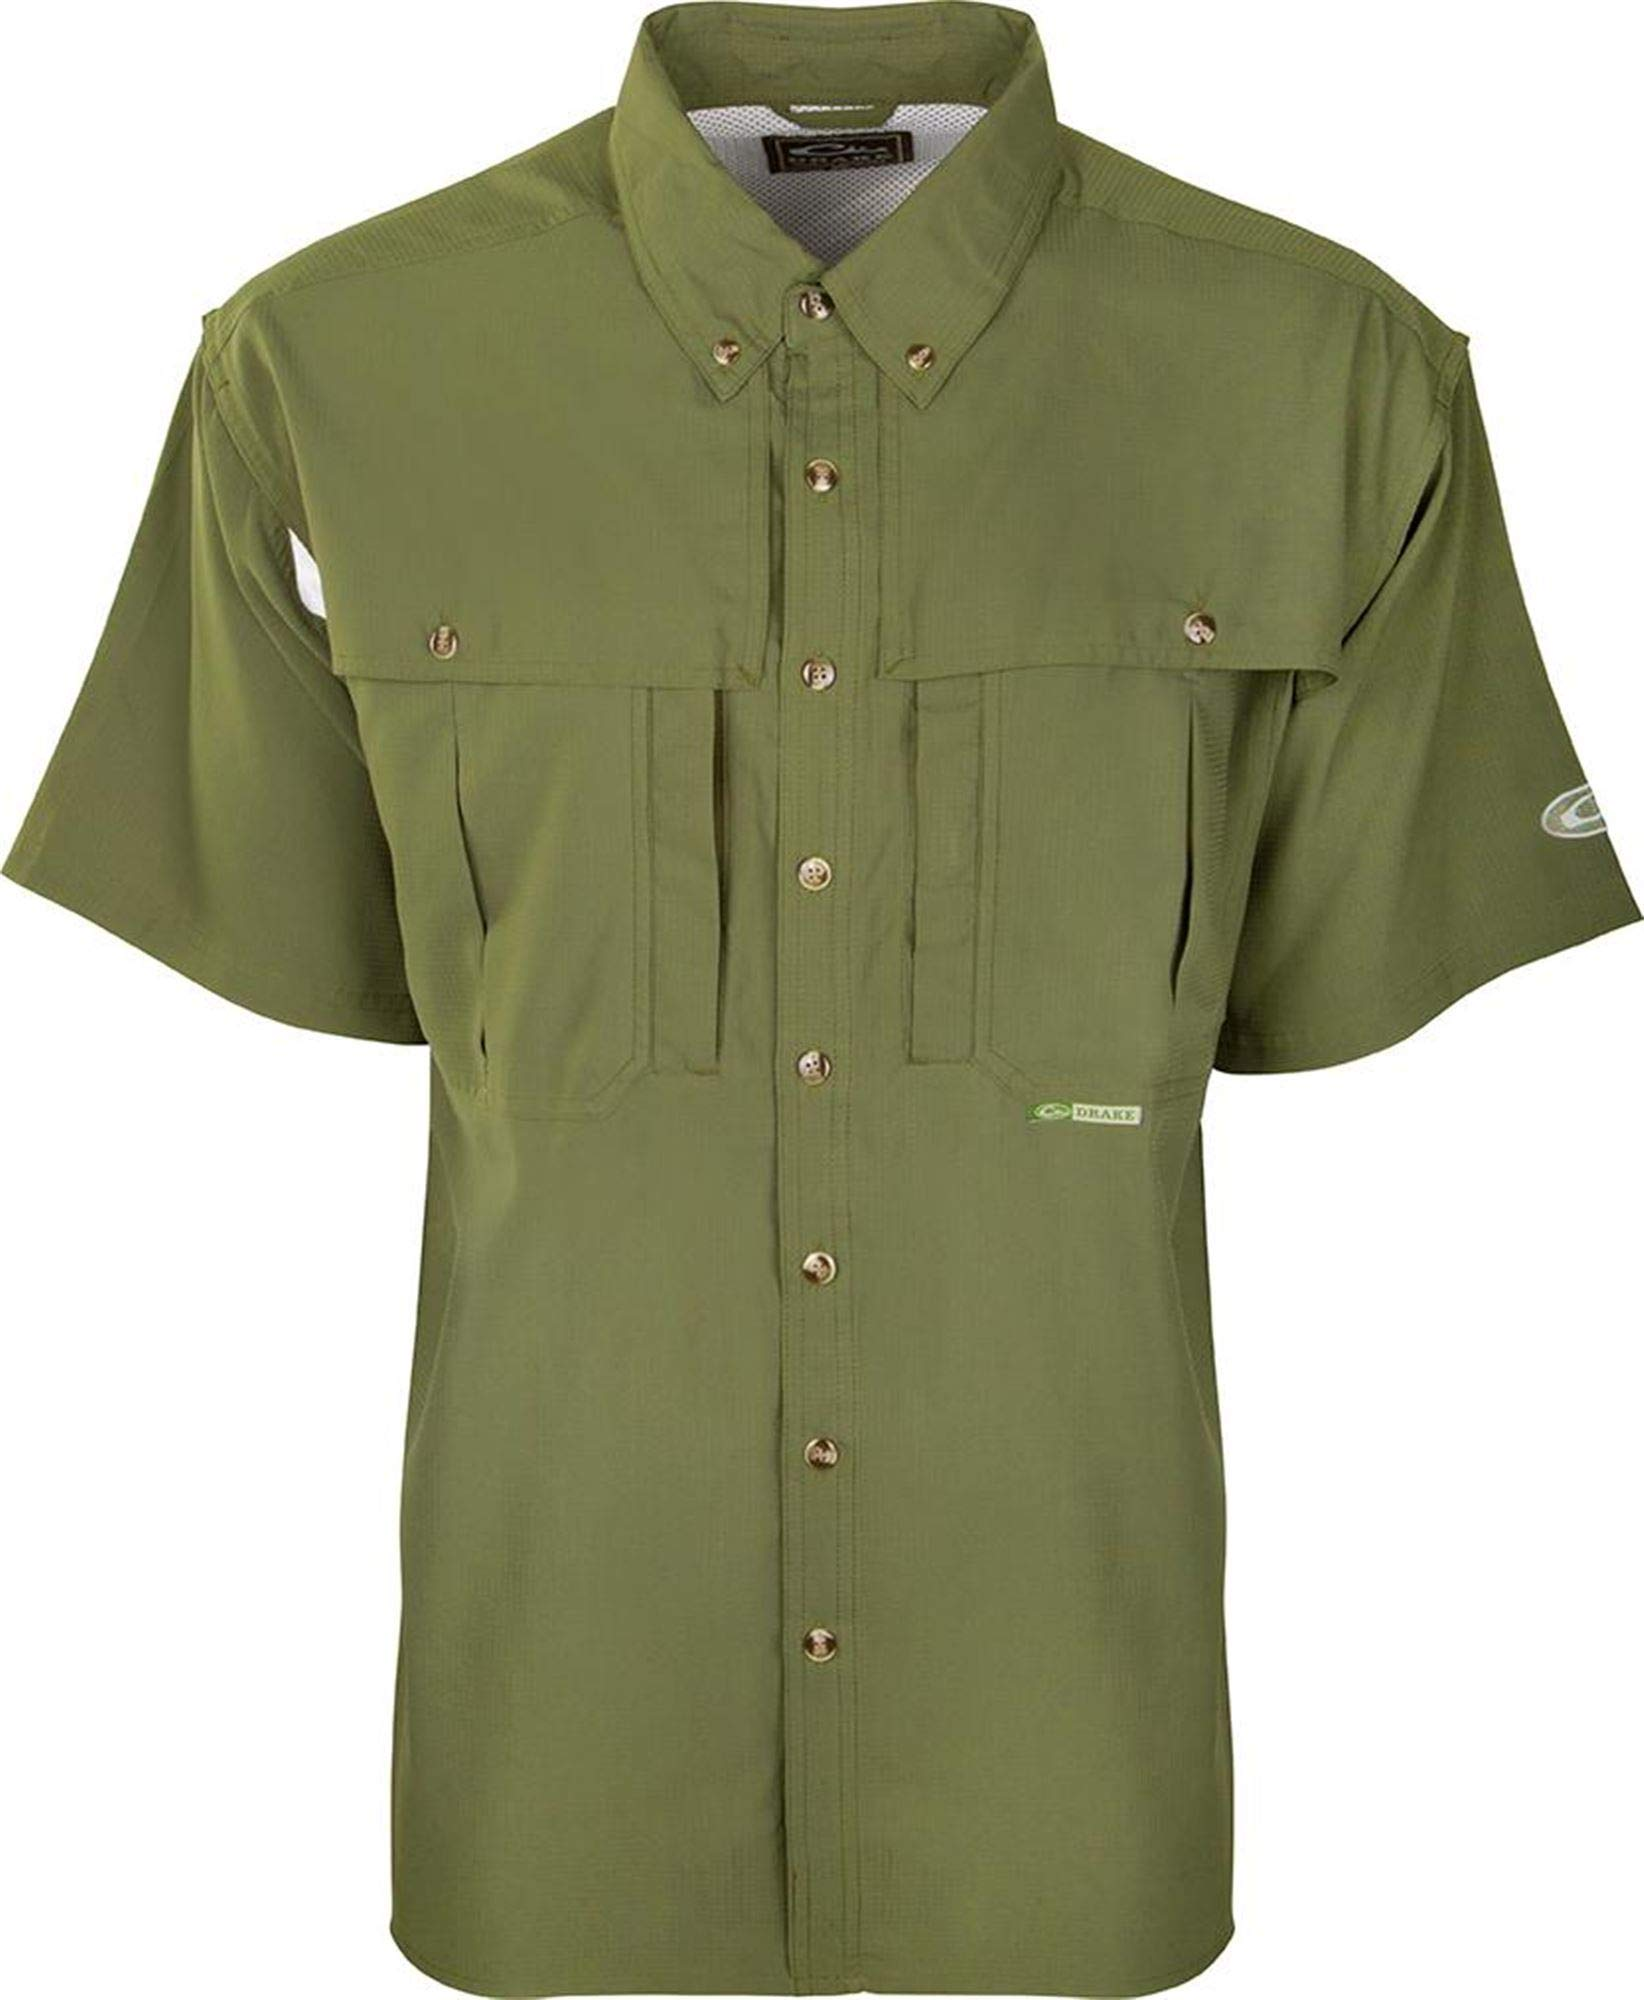 Drake Waterfowl Flyweight Wingshooter's Shirt S/S by Drake